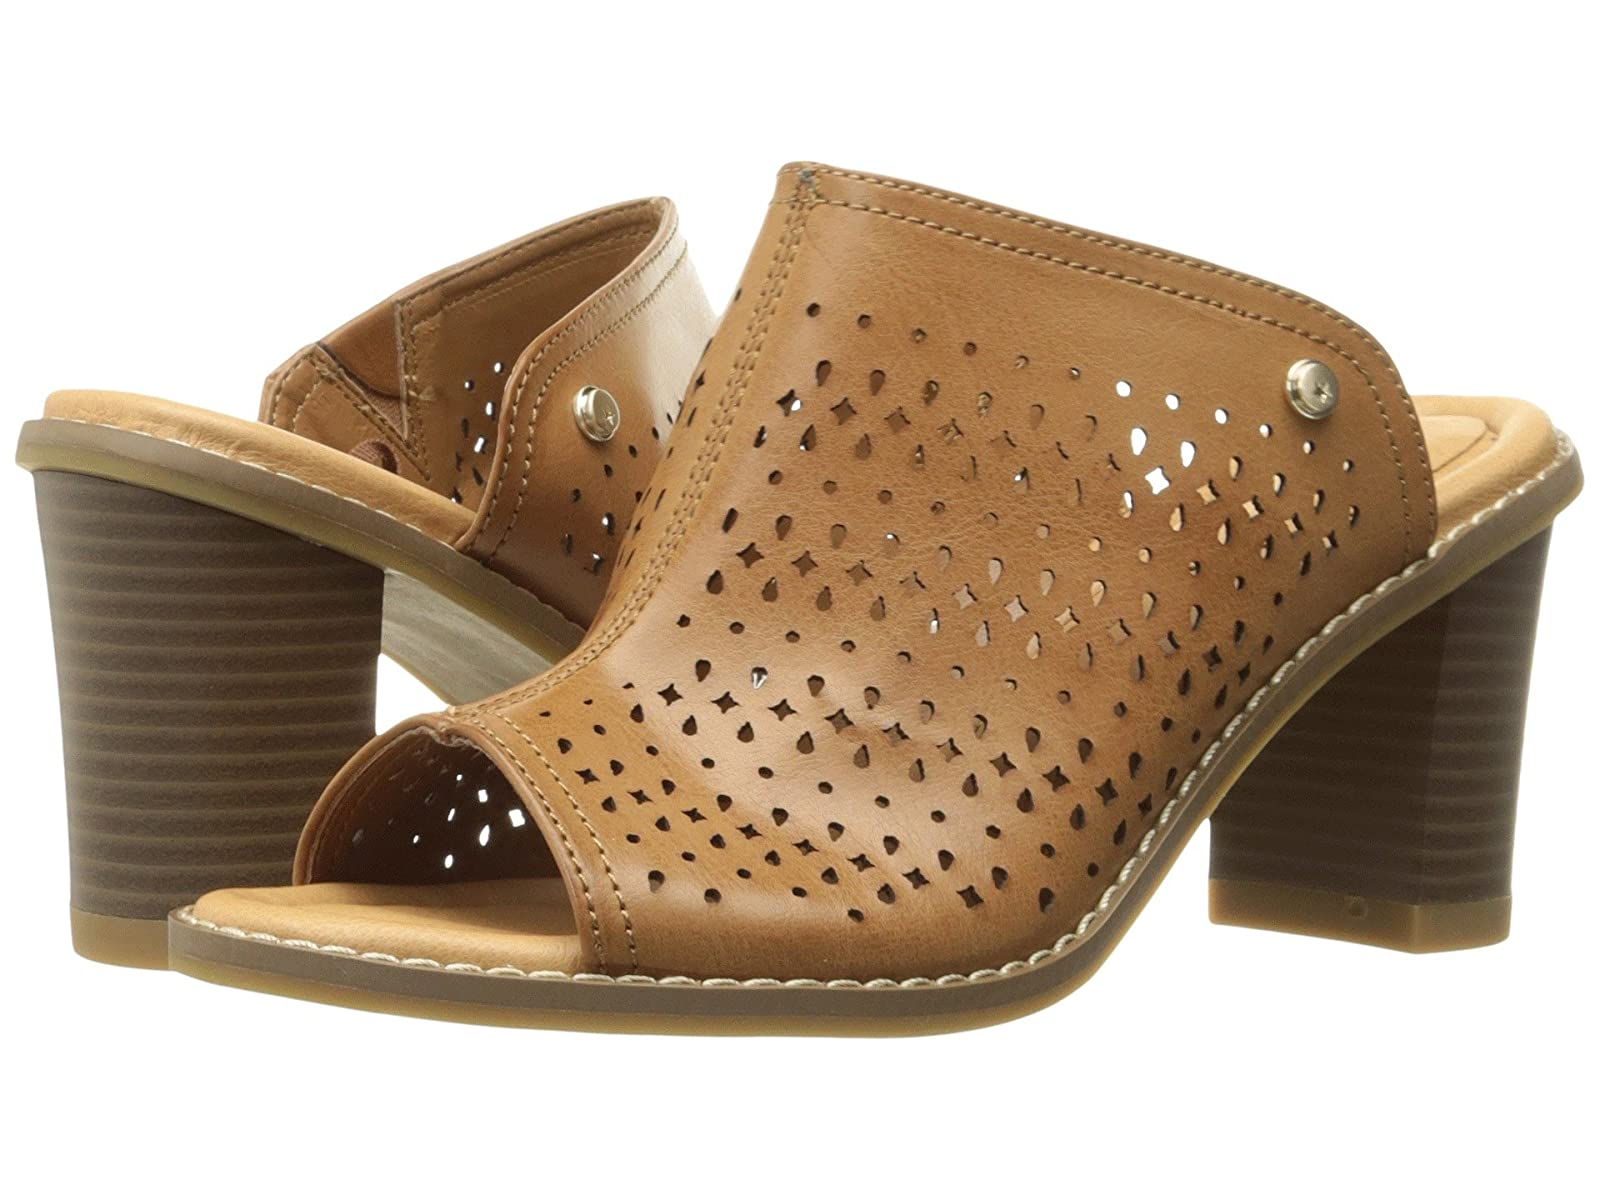 Dr. Scholl's PromiseCheap and distinctive eye-catching shoes